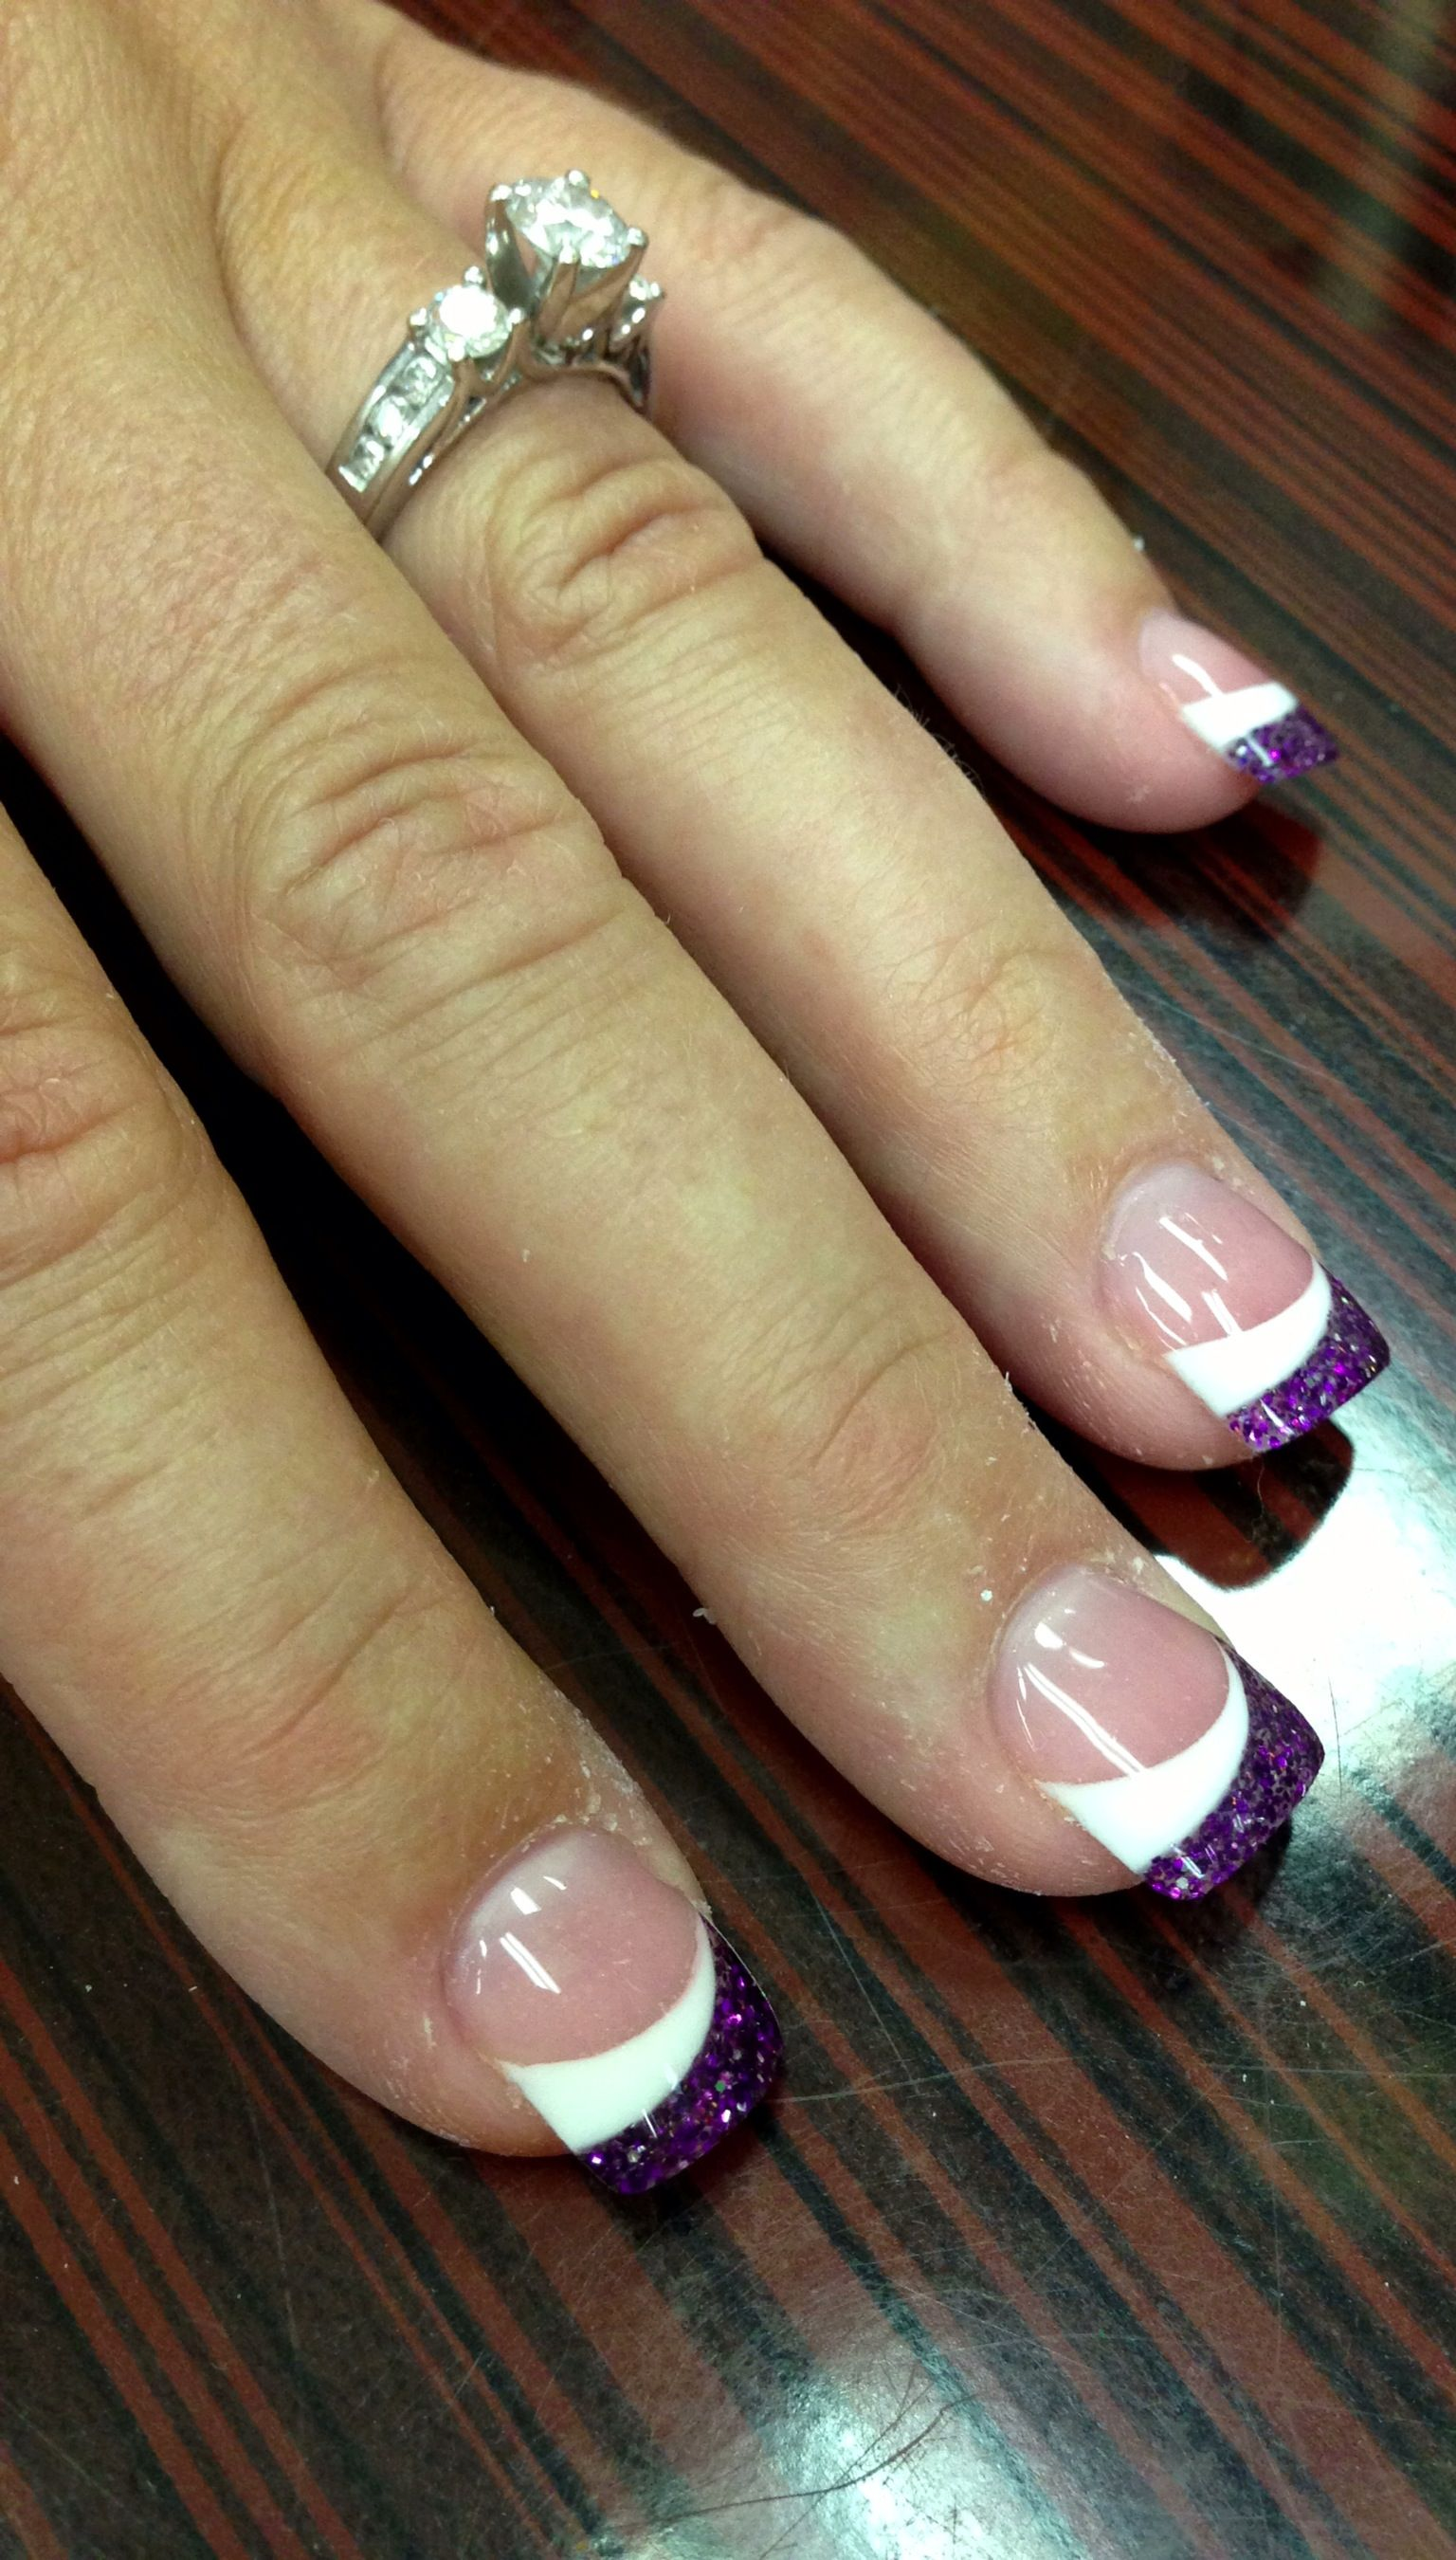 Fashion style Nails acrylic designs for weddings for girls